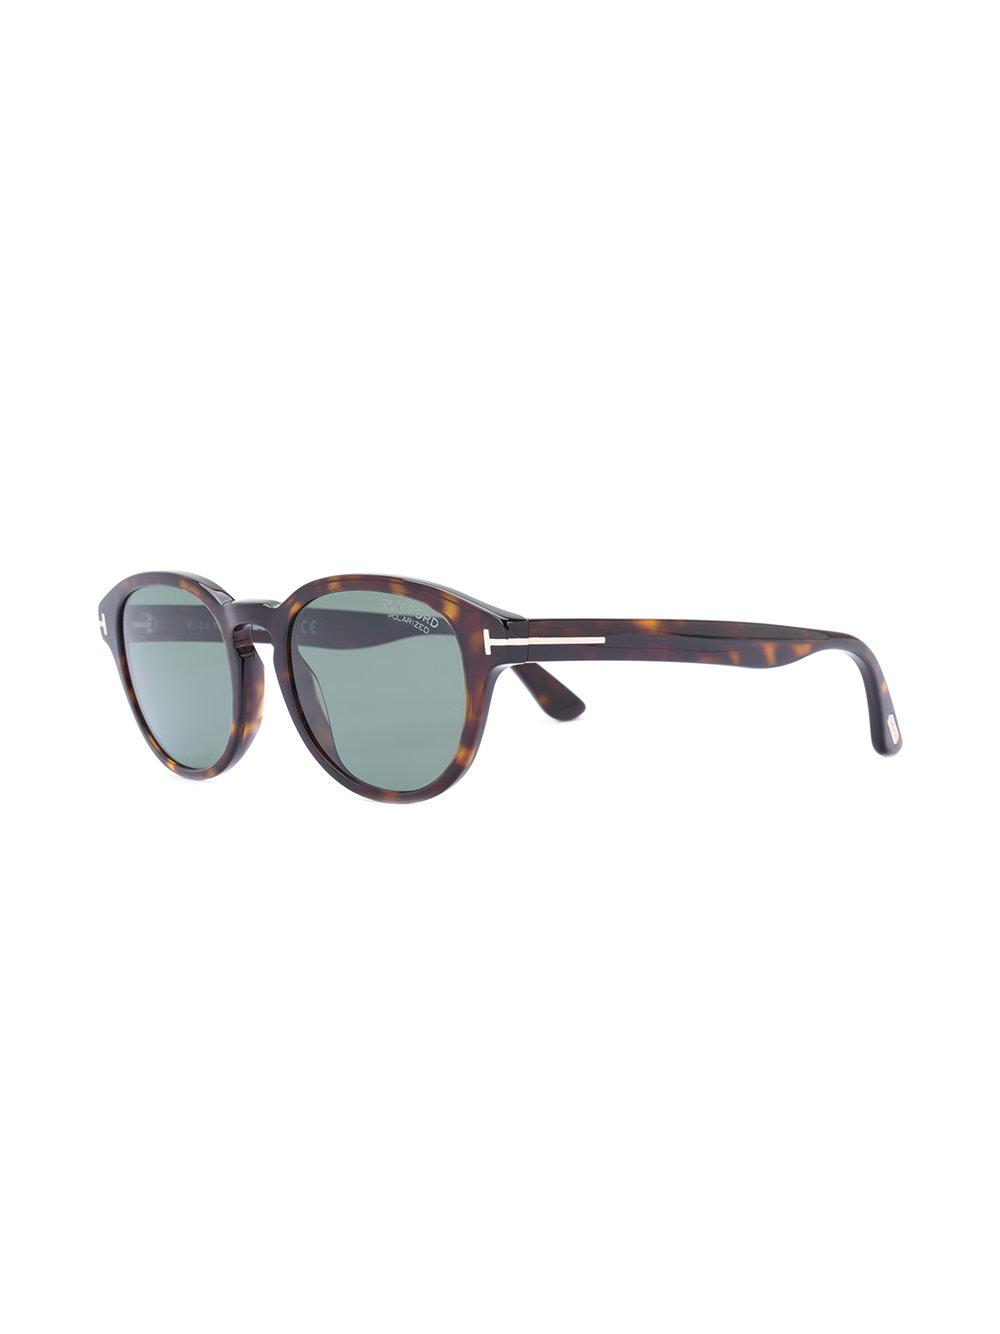 874ce1ee527 Tom Ford Von Bulow Sunglasses in Brown - Lyst